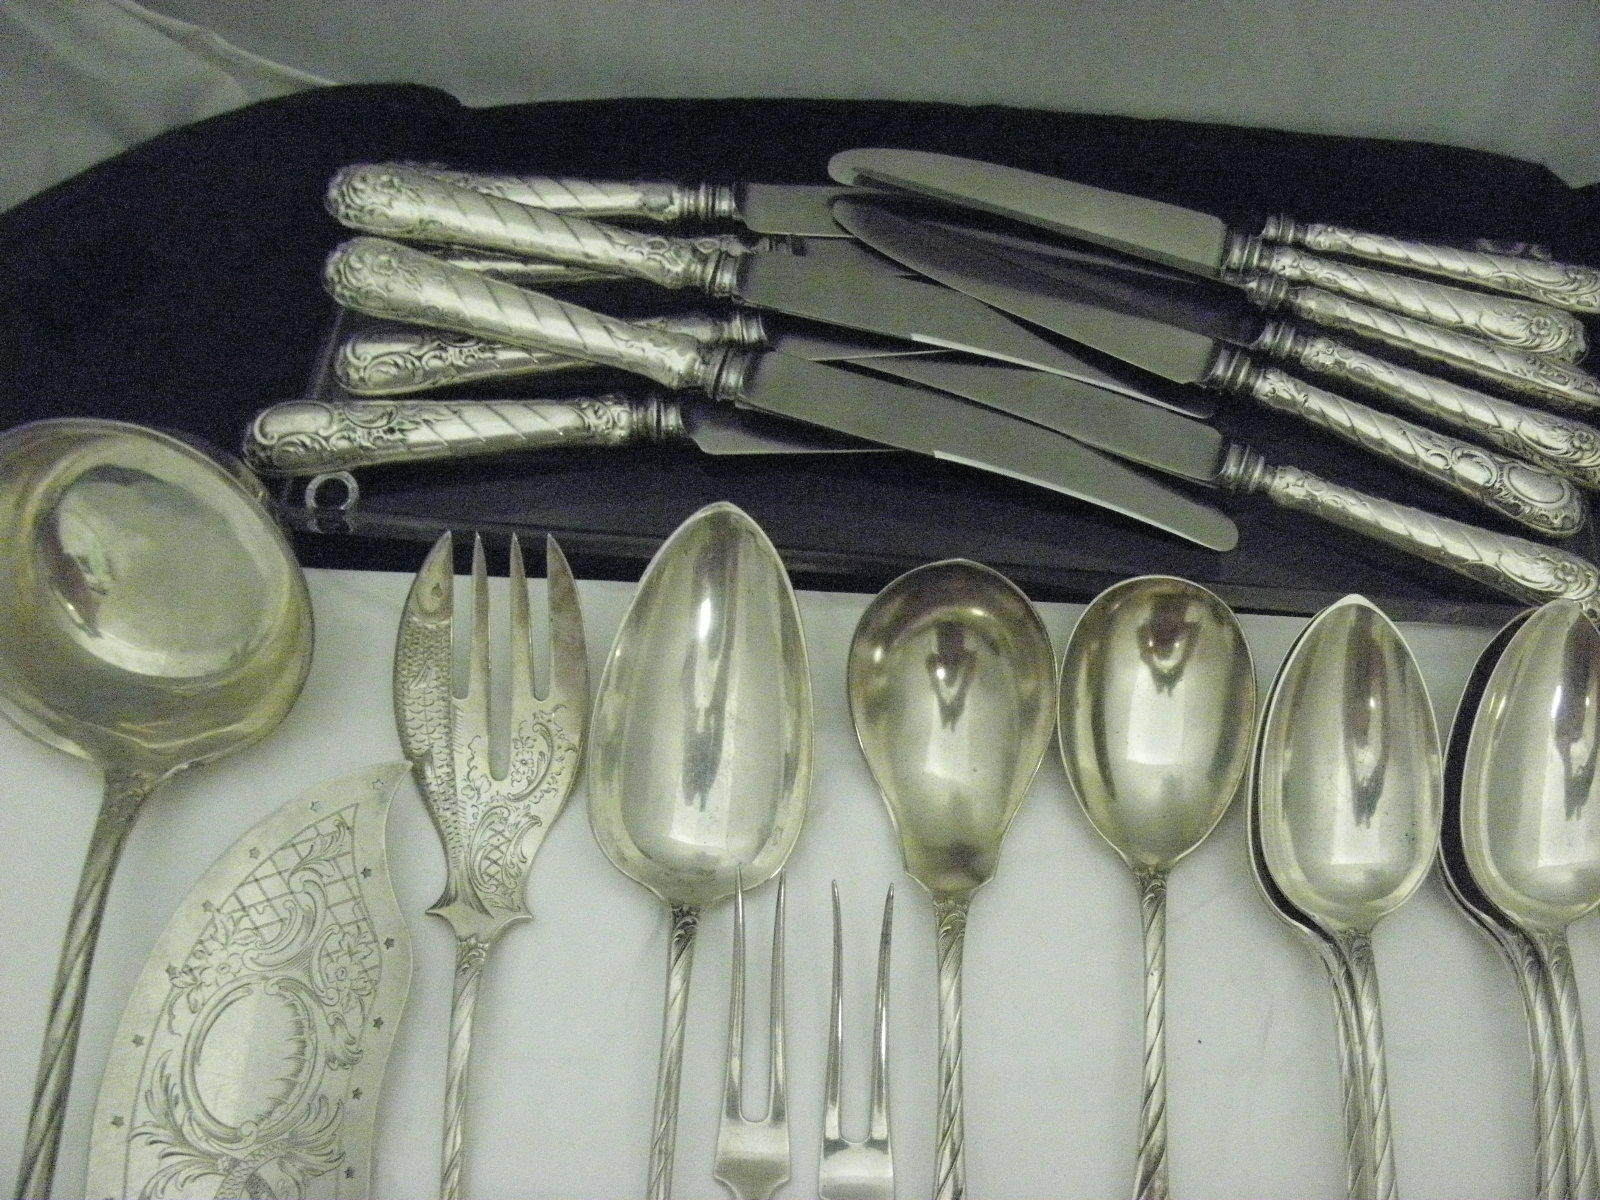 Antique Sheffield Germany 800 Sterling Silver Flatware Place for 6, 44pc Total.